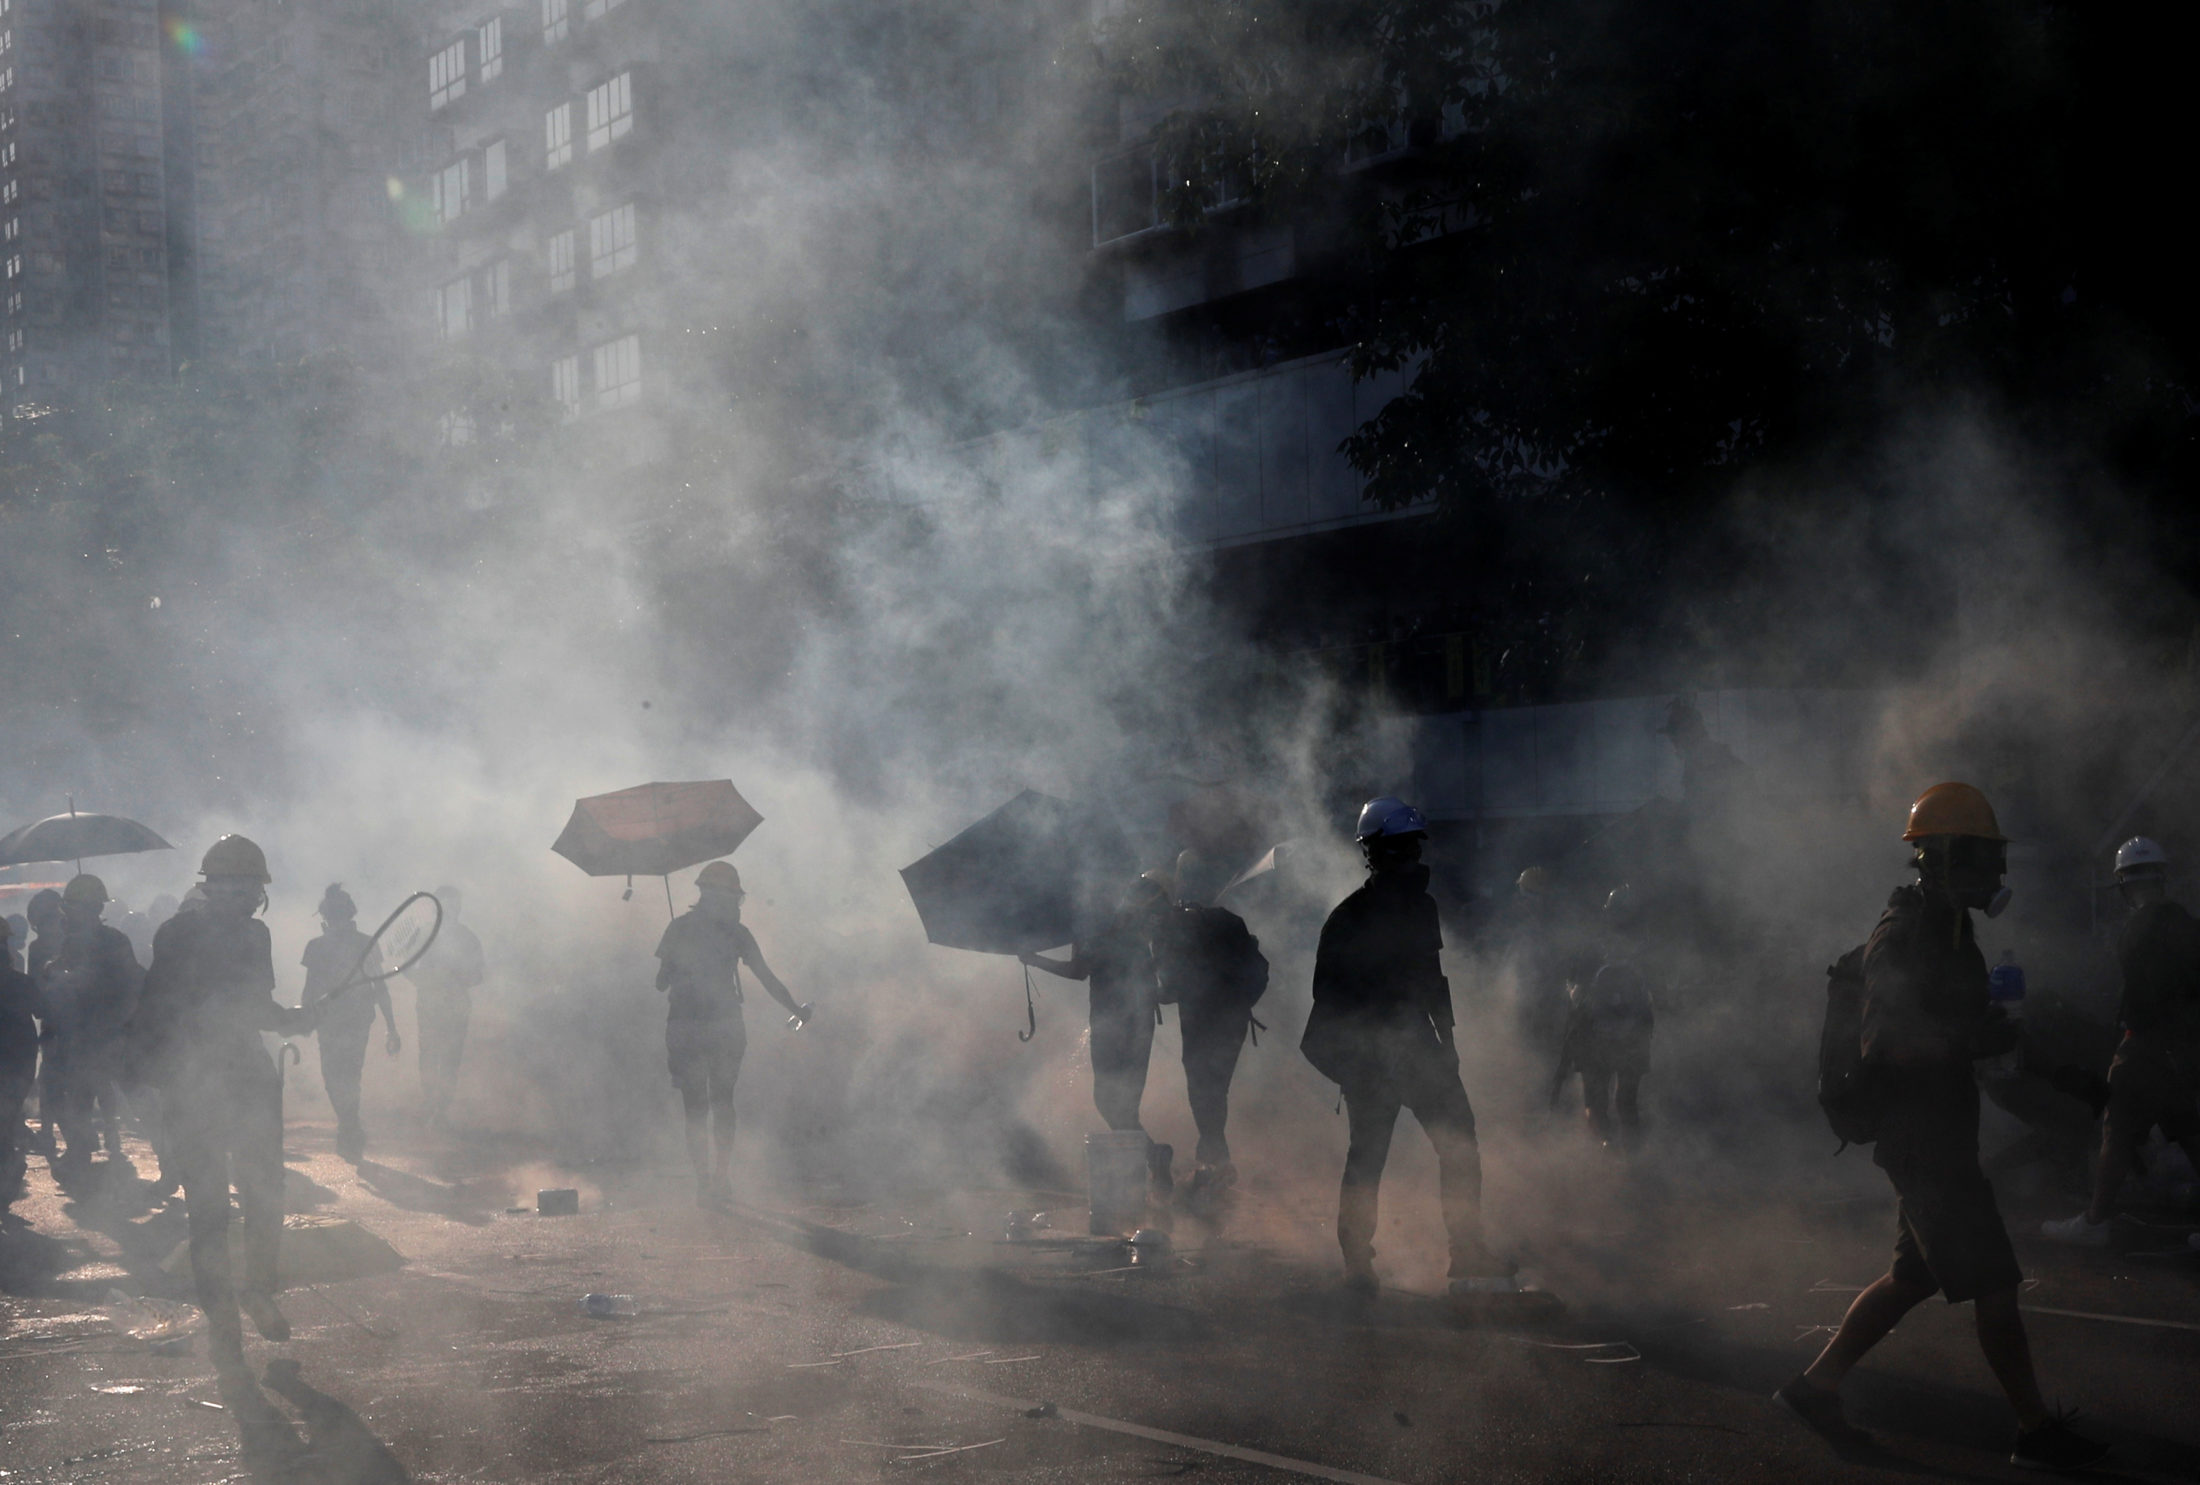 Protesters react after tear gas was fired by the police during a demonstration in support of the city-wide strike and to call for democratic reforms at Tai Po residential area in Hong Kong, China. Photo by Tyrone Siu/Reuters